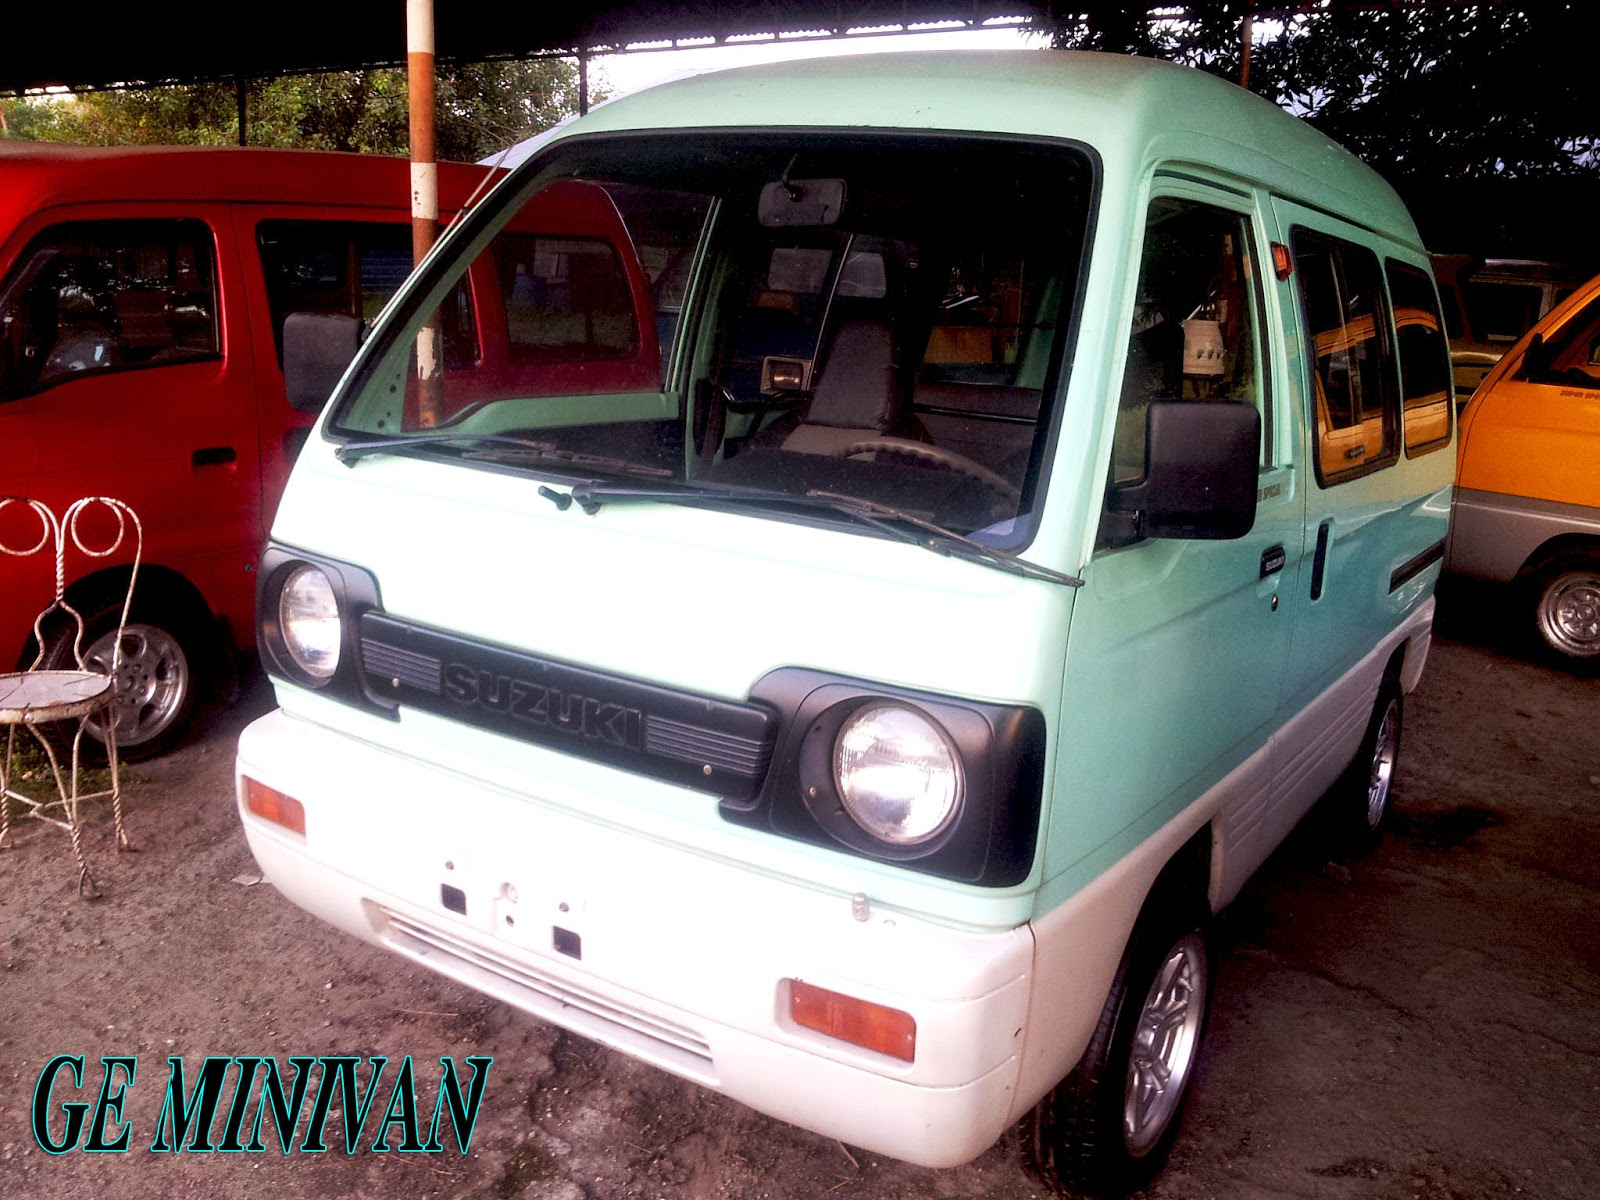 400 a day to own a suzuki minivan ge home loan cars electronic for sale cebu city